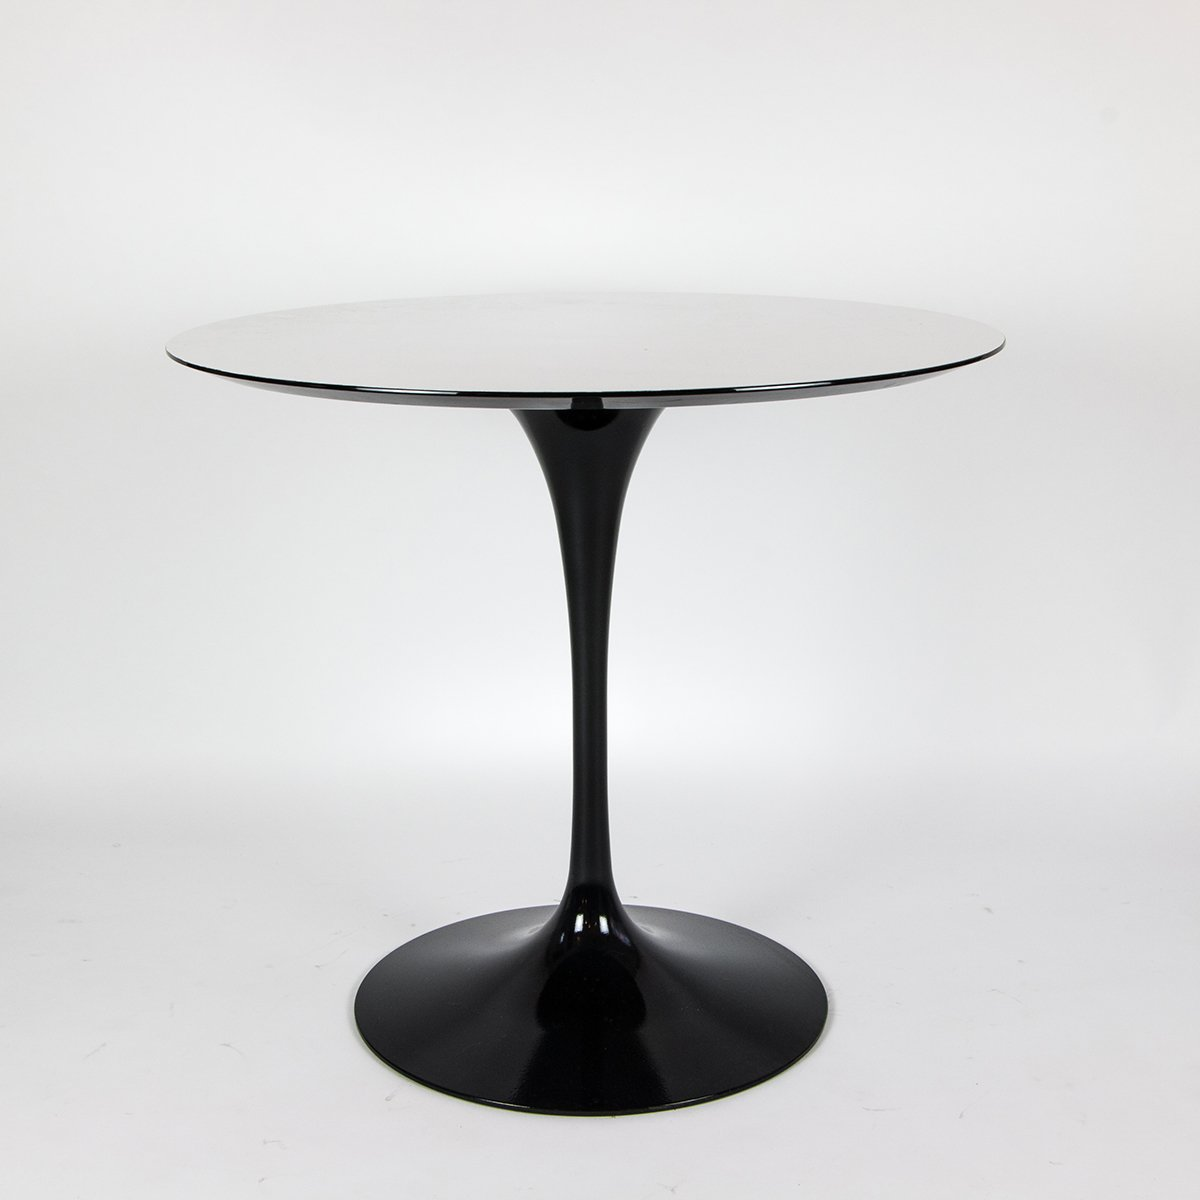 Vintage Tulip Table By Eero Saarinen For Knoll For Sale At